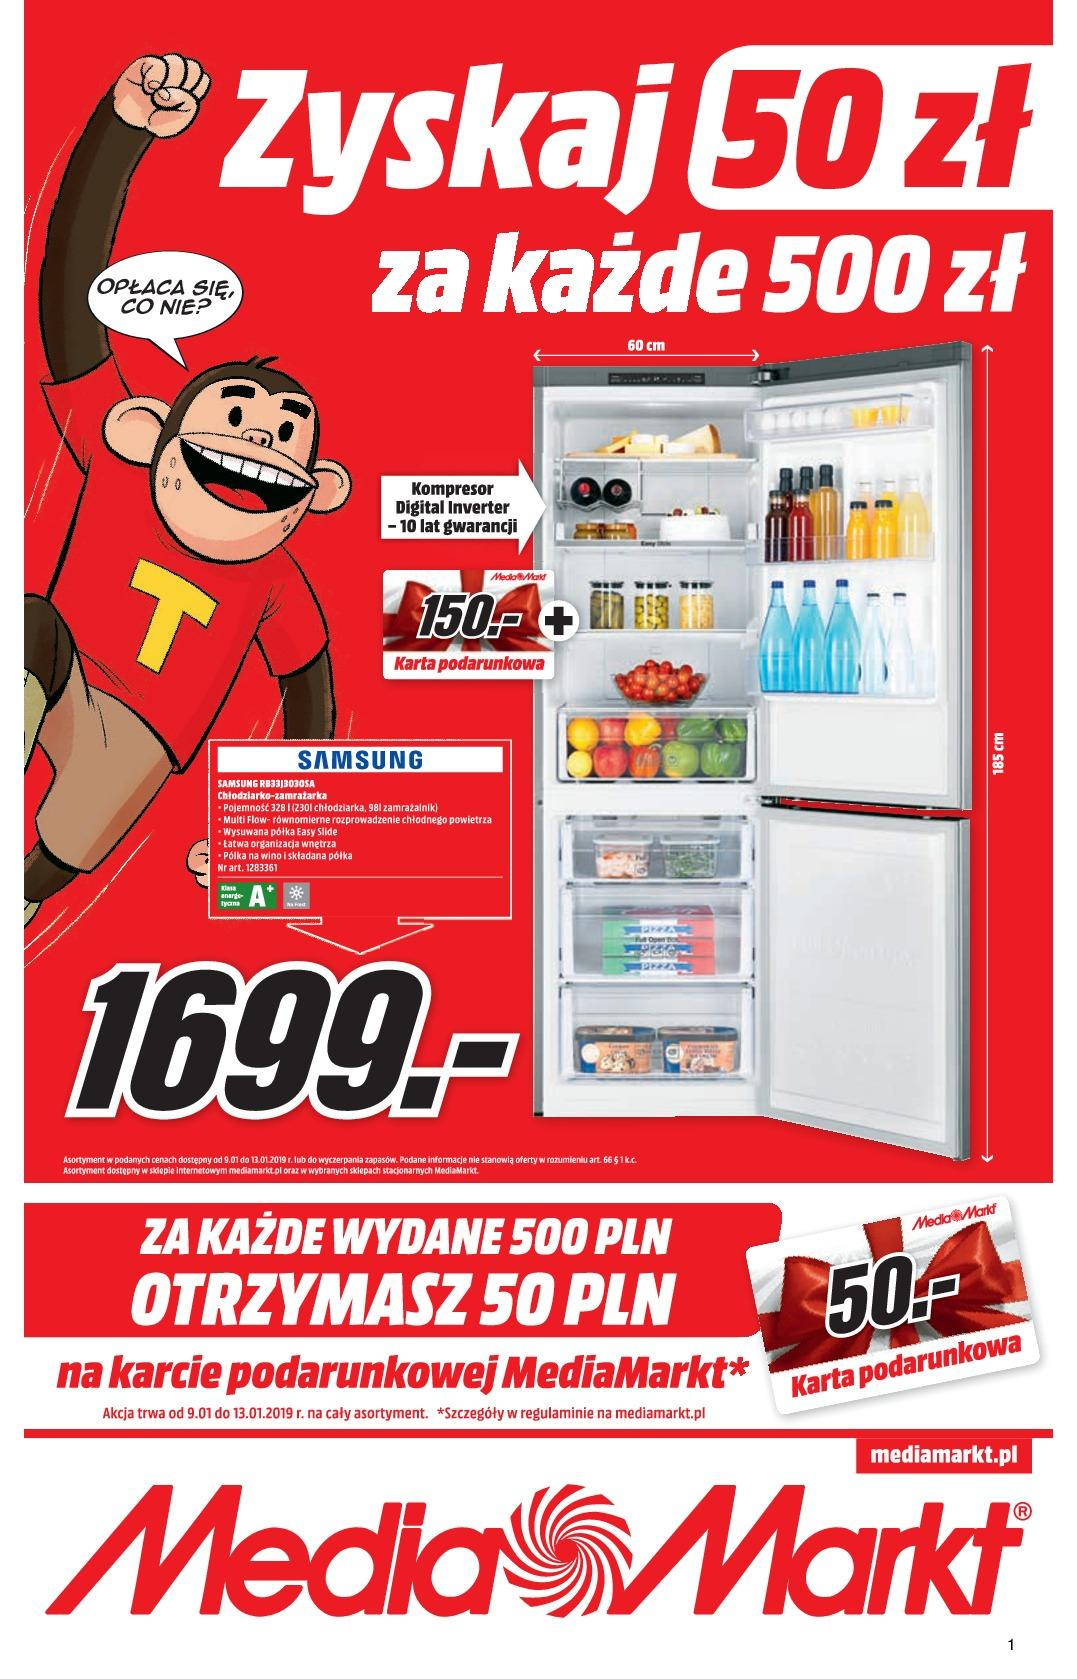 Gazetka promocyjna Media Markt do 13/01/2019 str.1